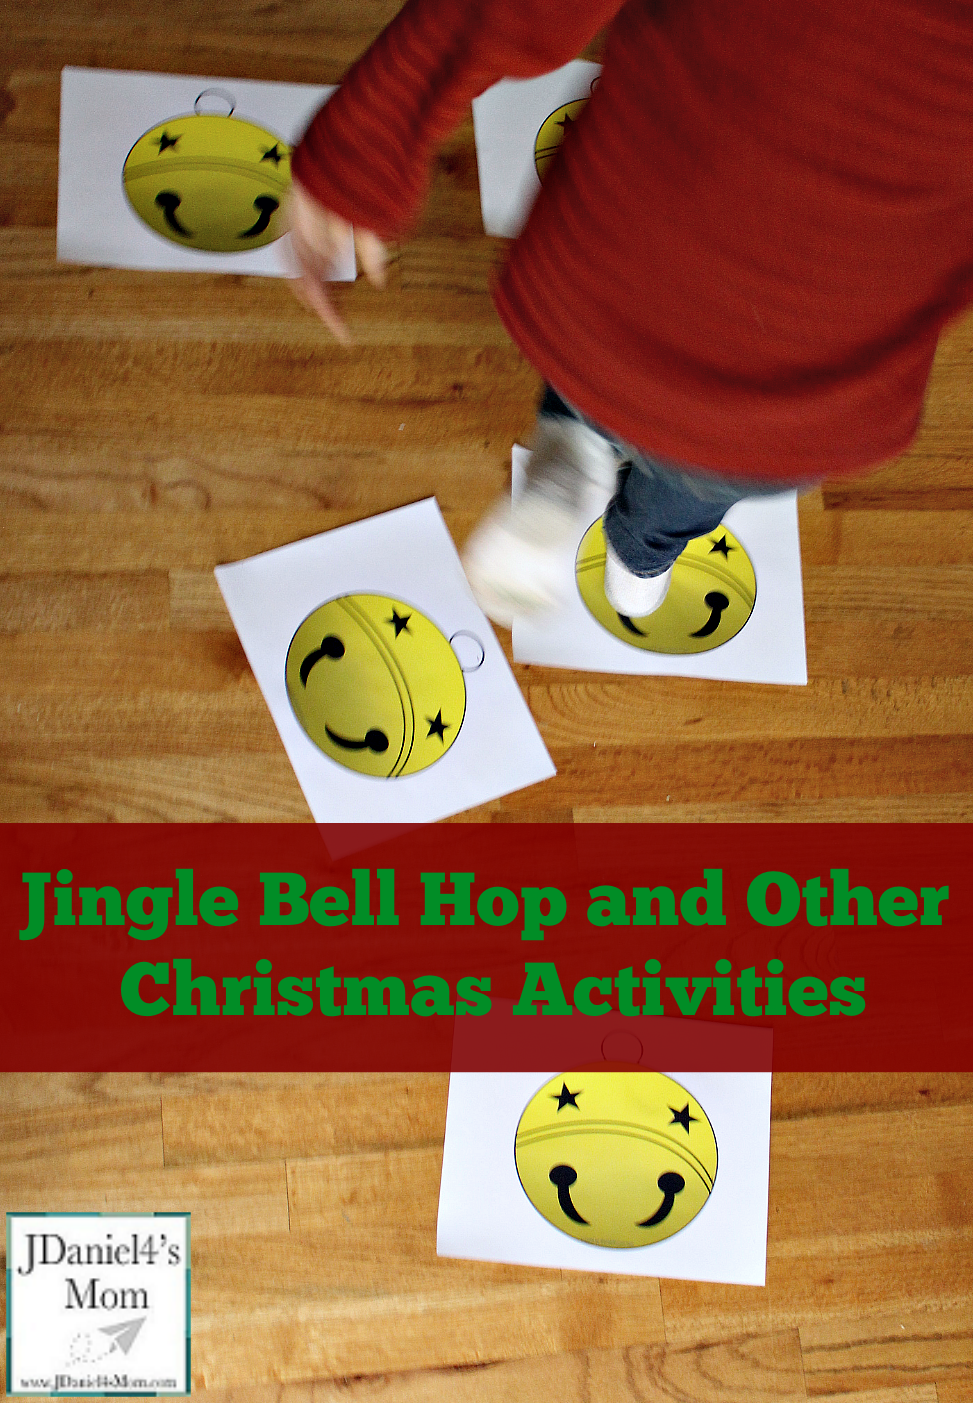 Christmas Activities - Jingle Bell Hop Printable Cards and other Activities for Kids to Play